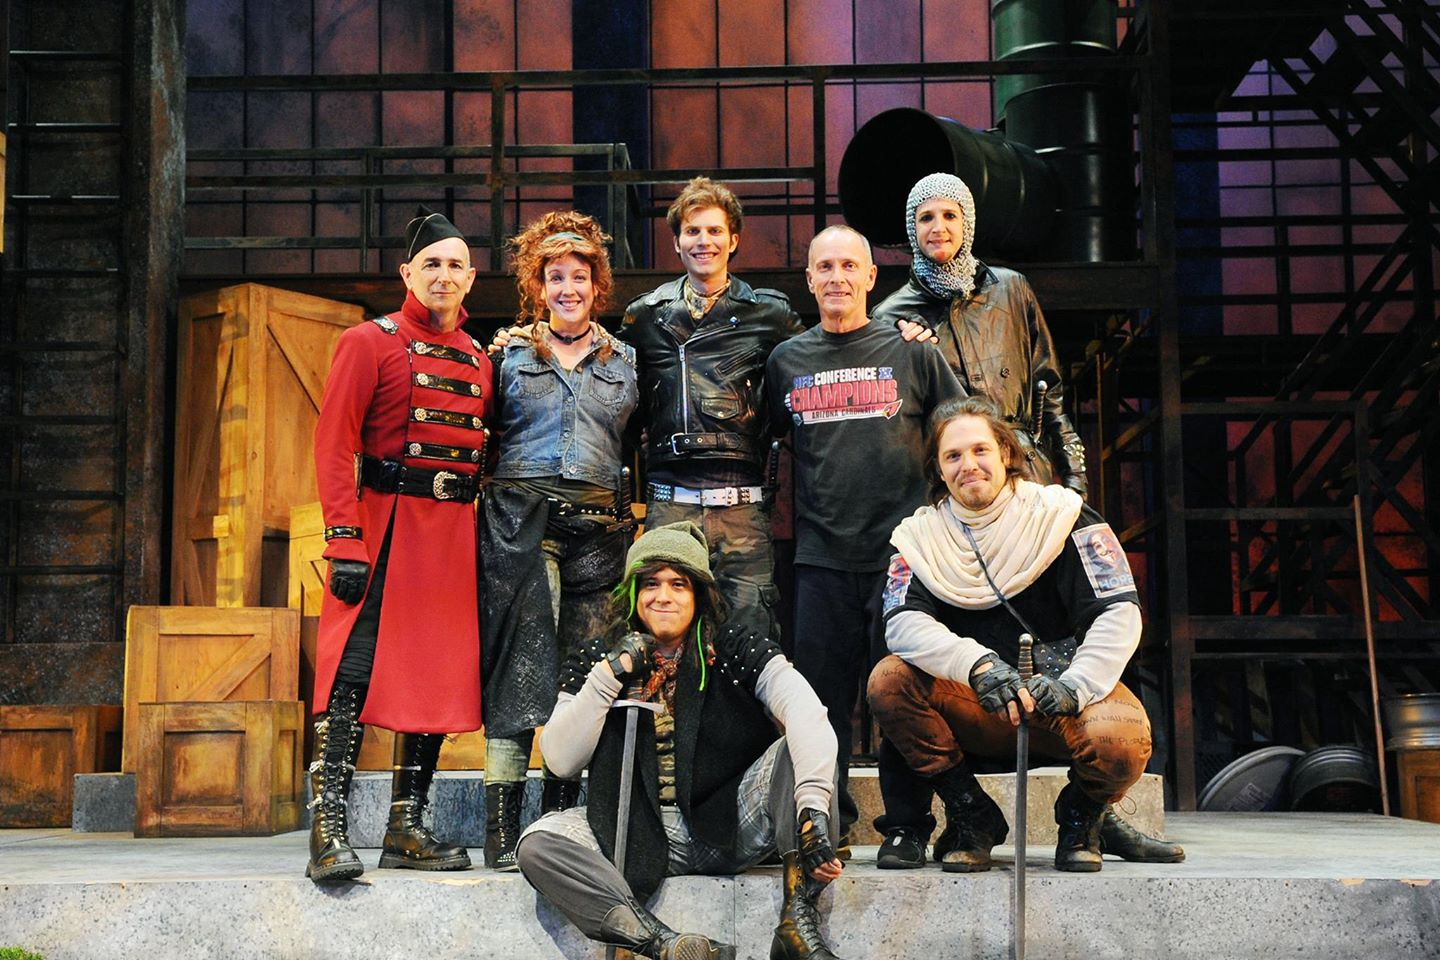 David Barker poses with the cast of Childsplay's ''Robin Hood.'' Directed by Dwayne Hartford, costumes by Connie Furr-Soloman, Lights by Tim Monson , Sound by Chris Neumeyer, wigs by Katie Peck, Set by Aaron Jackson and stage management by Samantha Monson. — with Jon Gentry, Kate Haas, Ricky Araiza, Andy Cahoon, Eric P. Boudreaux and Keath Hall. (Photo by Tim Trumble)